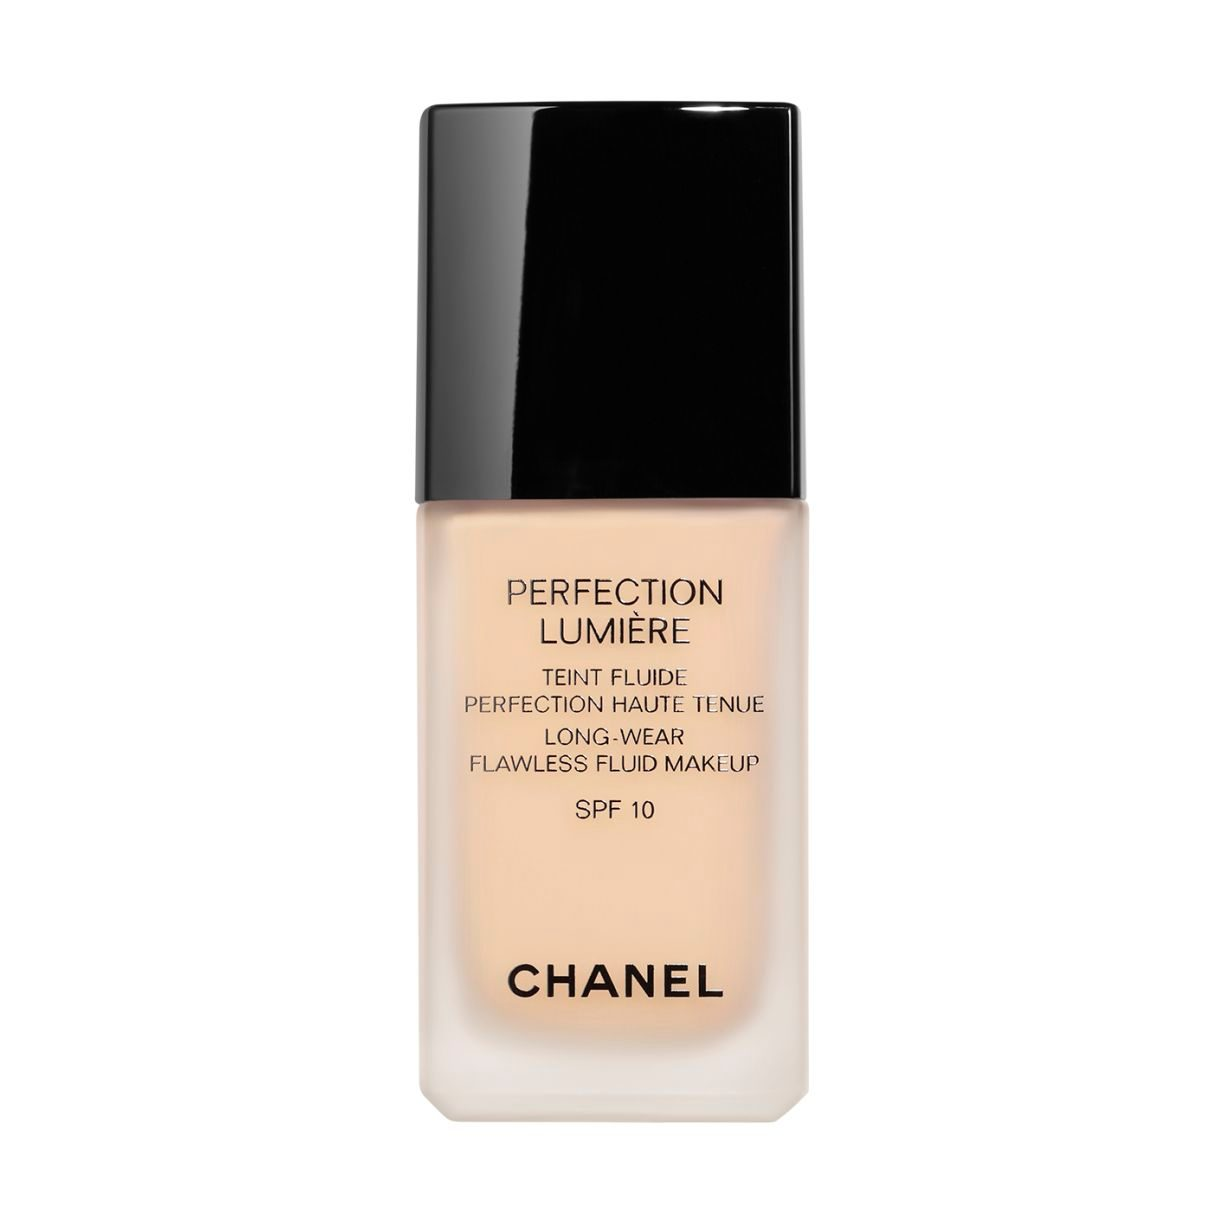 PERFECTION LUMIÈRE VLOEIBARE FOUNDATION VOOR EEN PERFECTE TEINT SPF 10